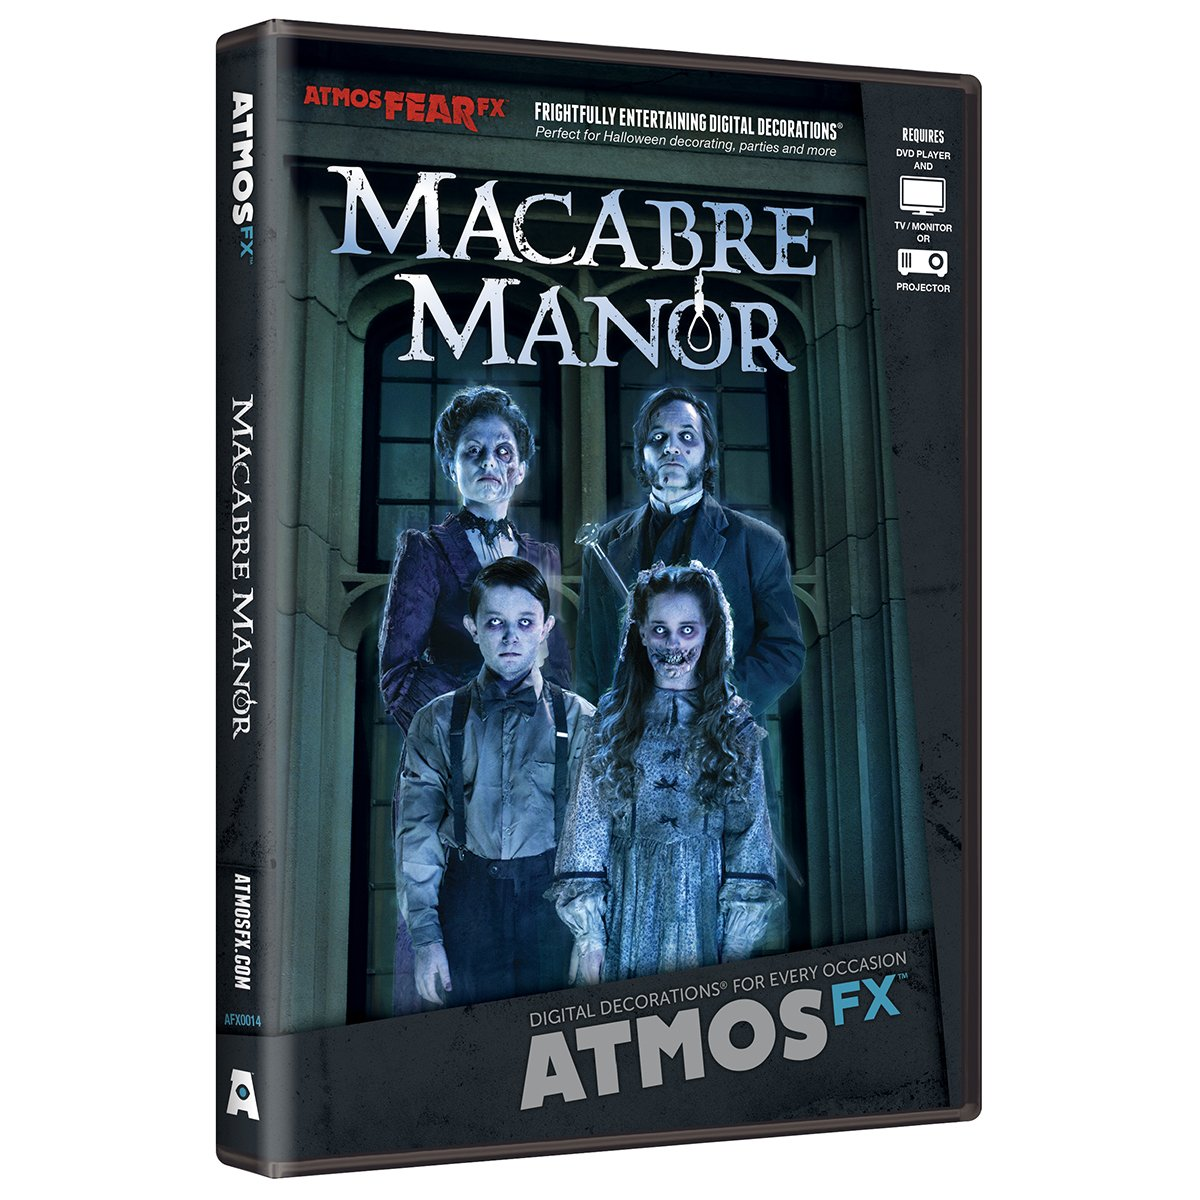 AtmosFX Macabre Manor Digital Decorations DVD for Halloween Holiday Projection Decorating by AtmosFX